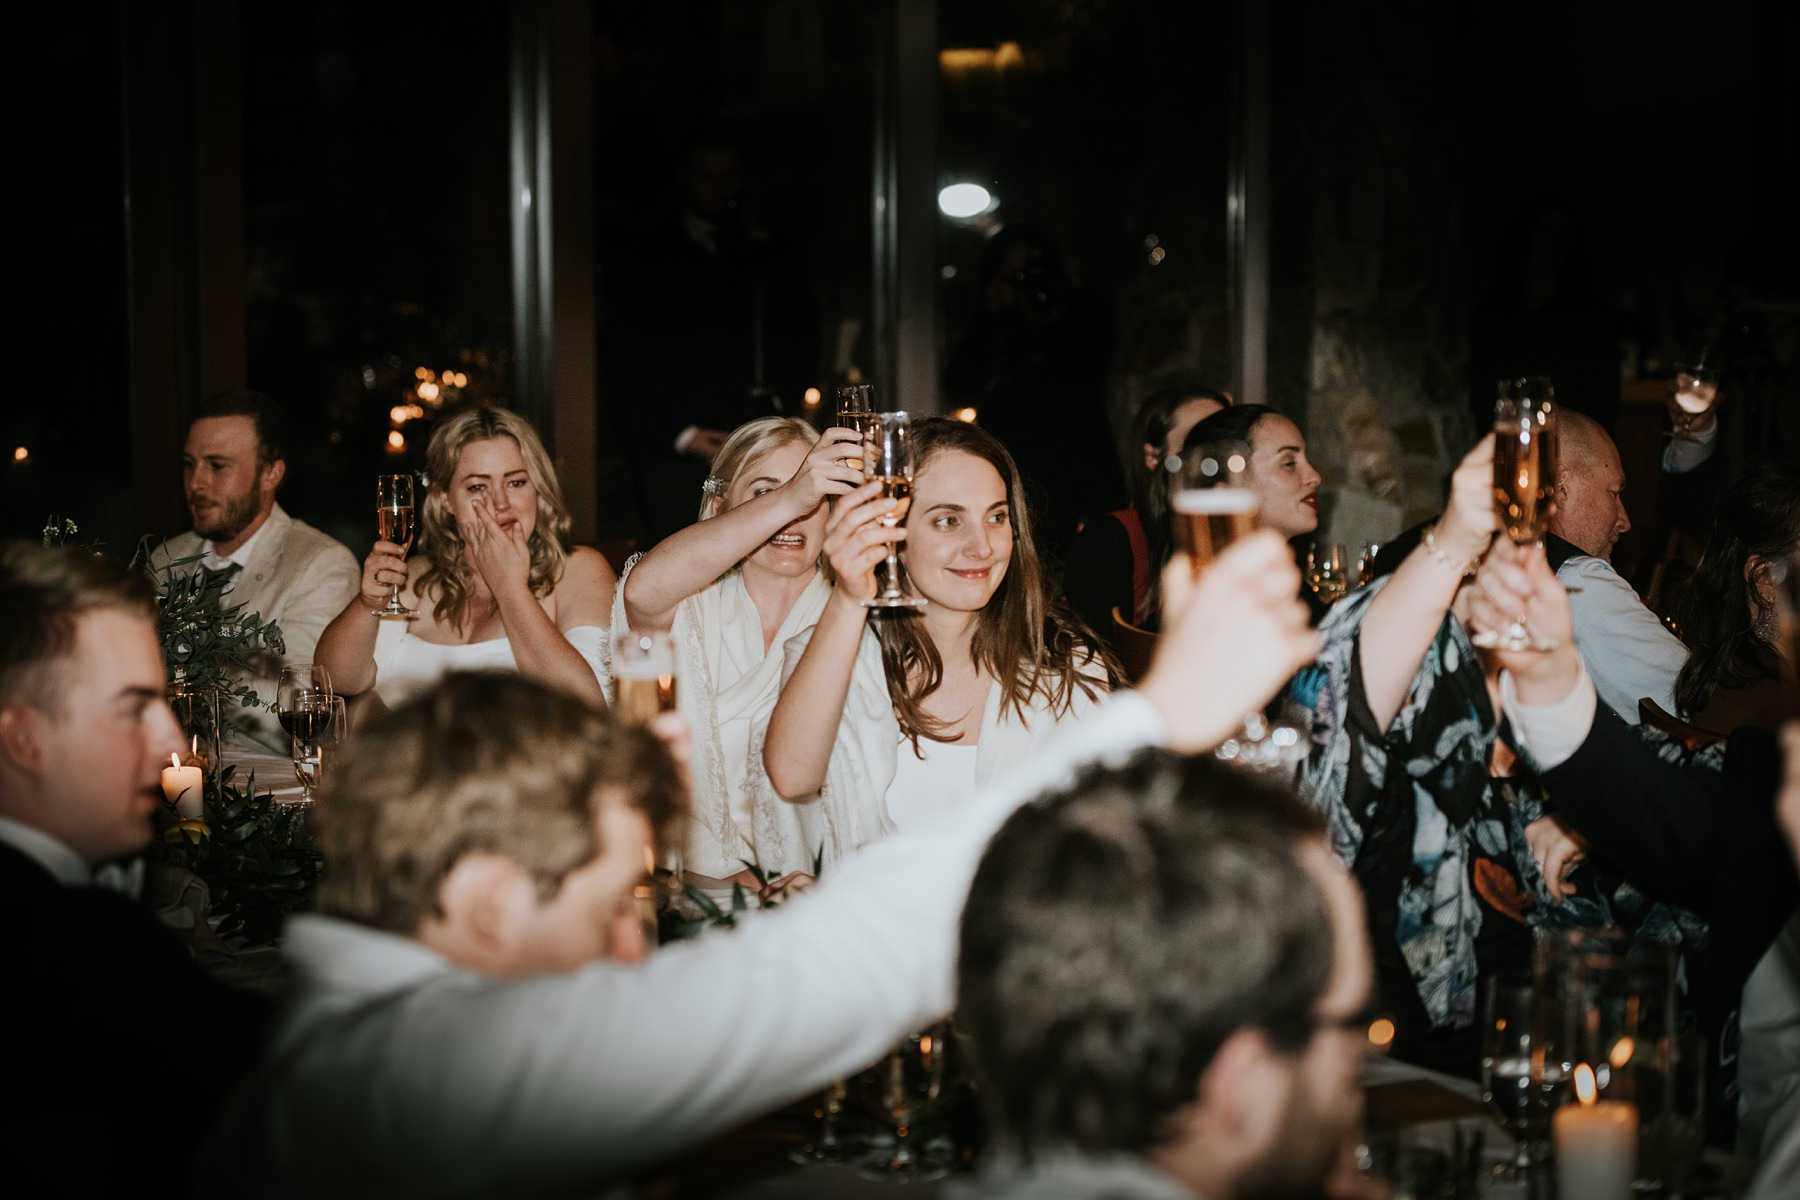 guests toasting bride and groom during wedding reception